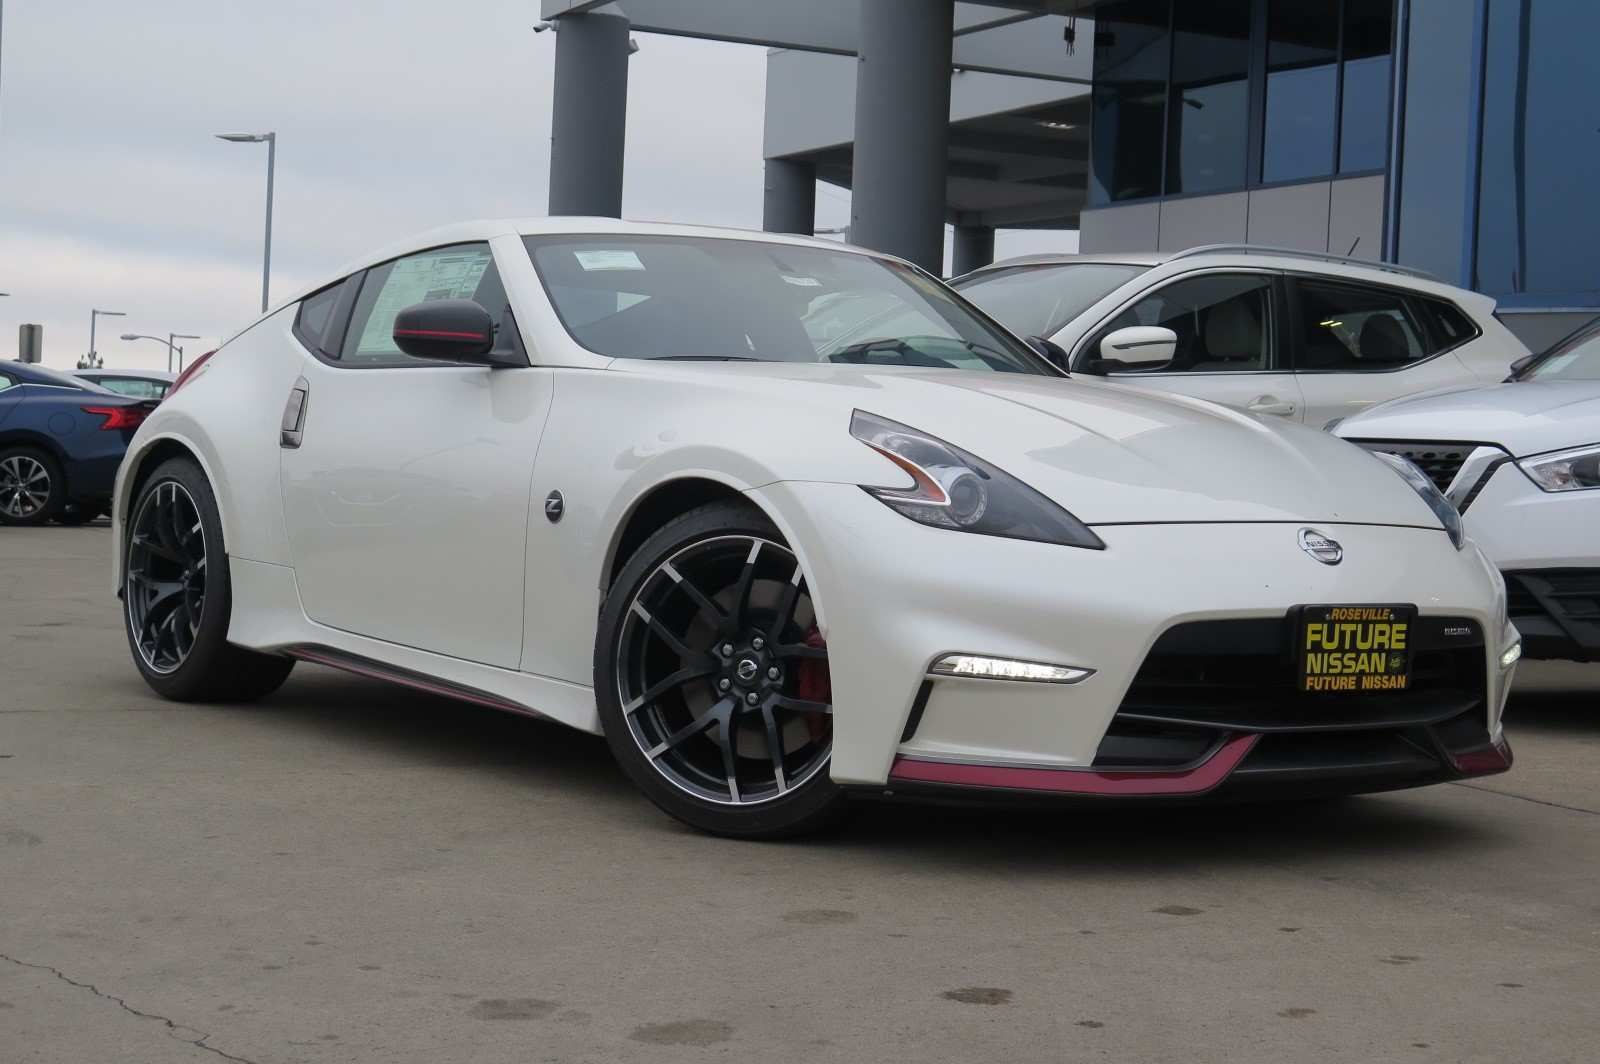 73 All New 2019 Nissan Nismo Specs and Review for 2019 Nissan Nismo